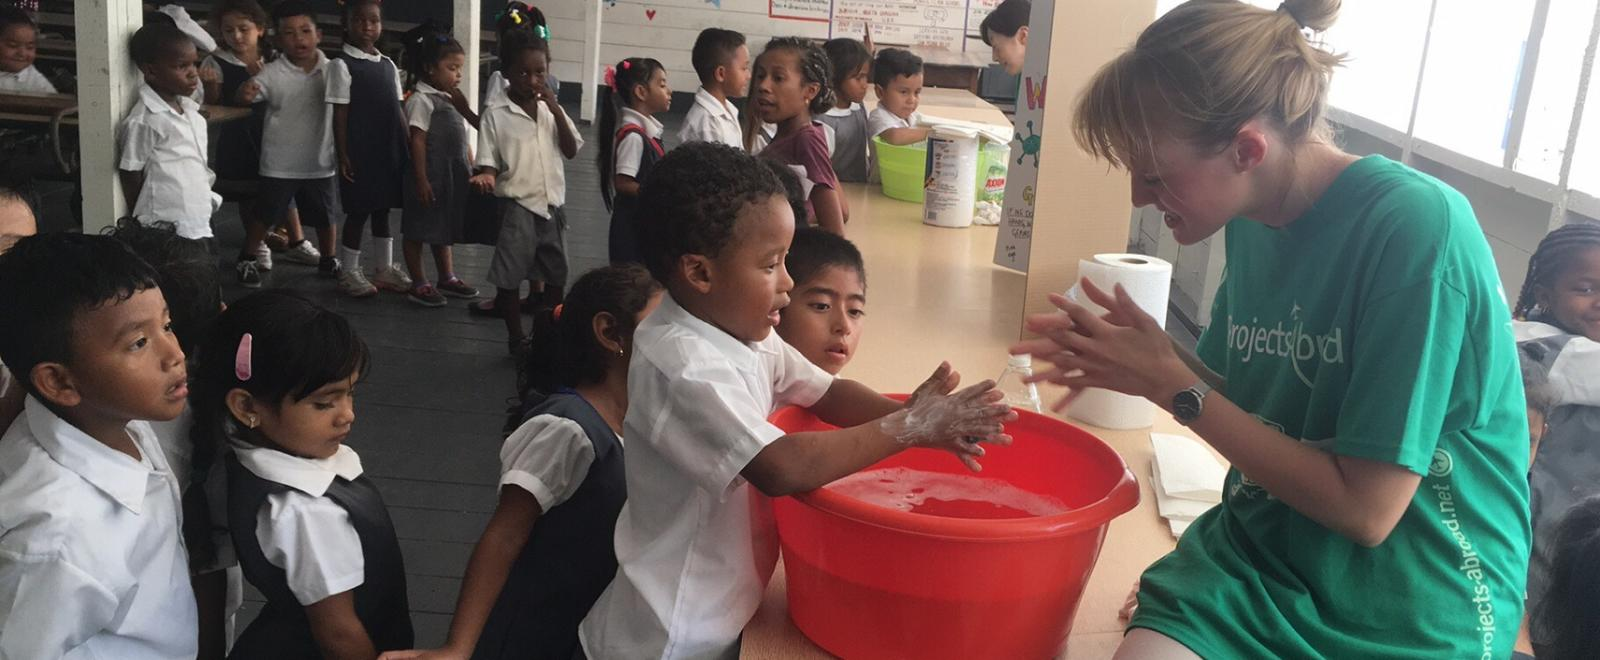 Projects Abroad volunteers practice good hygiene with children on the Public Health Internship in Belize